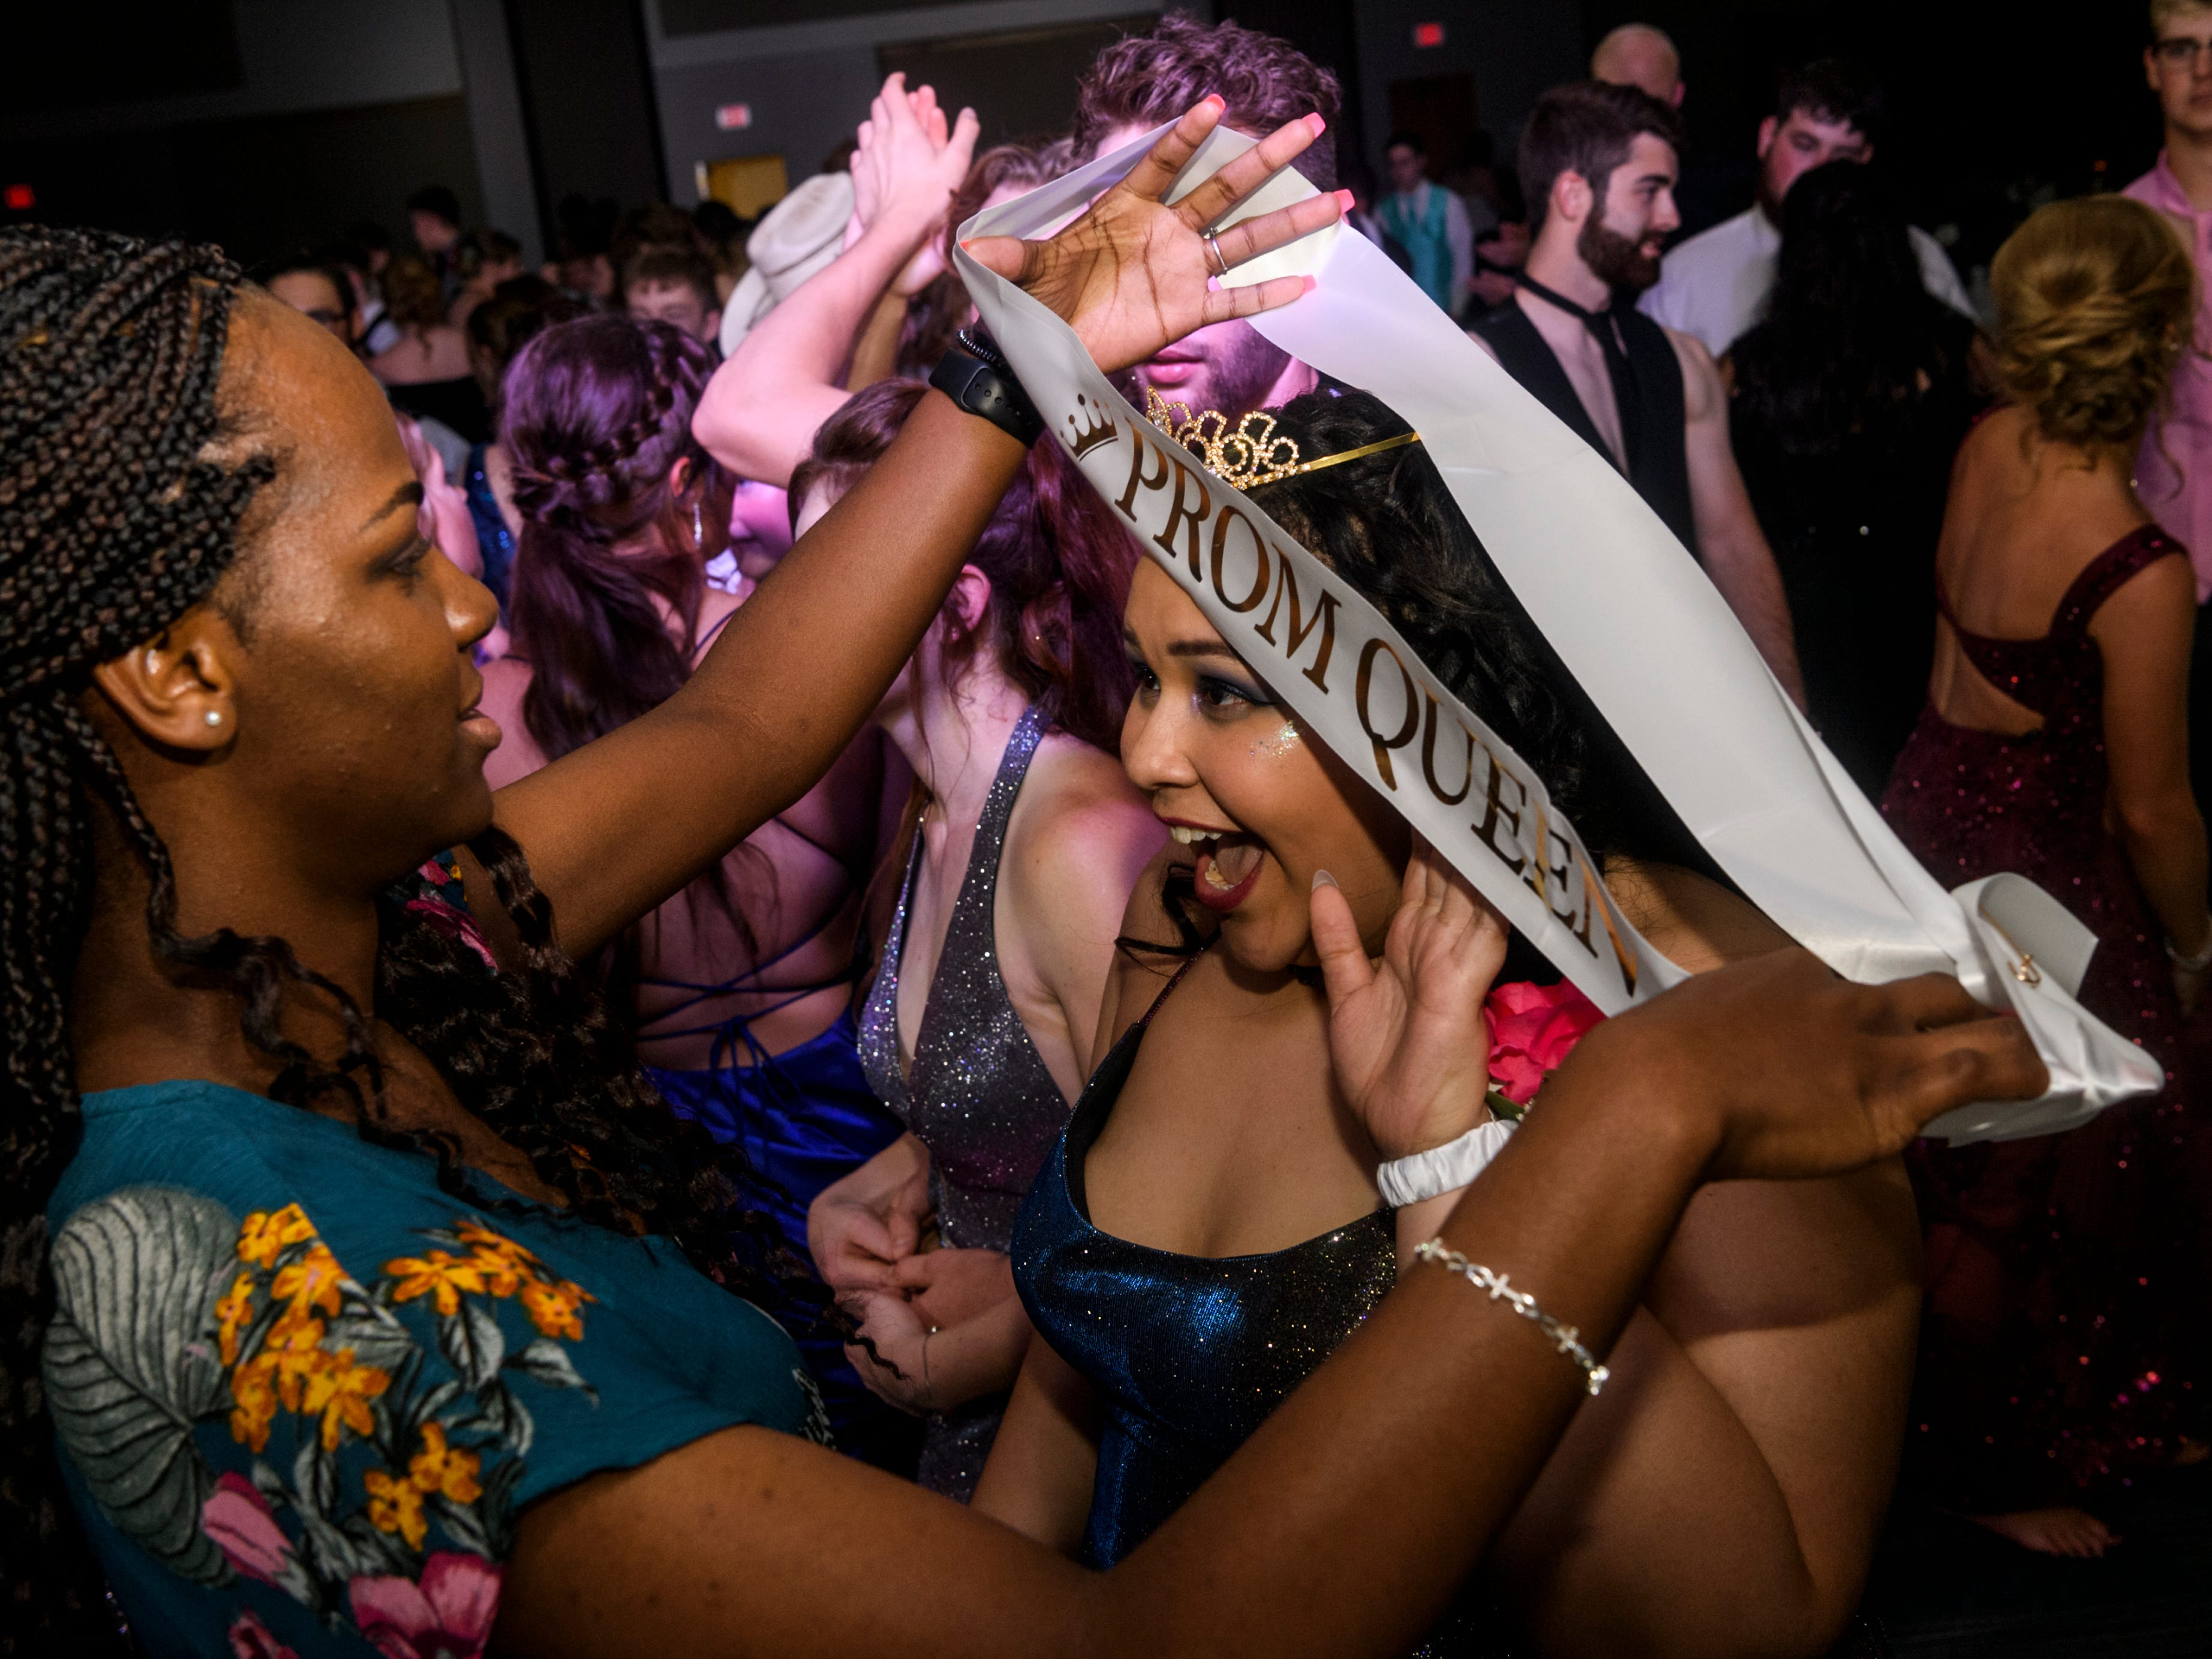 Mt. Vernon senior Bralyn Shripka, right, reacts to being crowned Prom Queen during the dance at the University of Southern Indiana's Carter Hall in Evansville, Ind., Saturday, May 4, 2019.